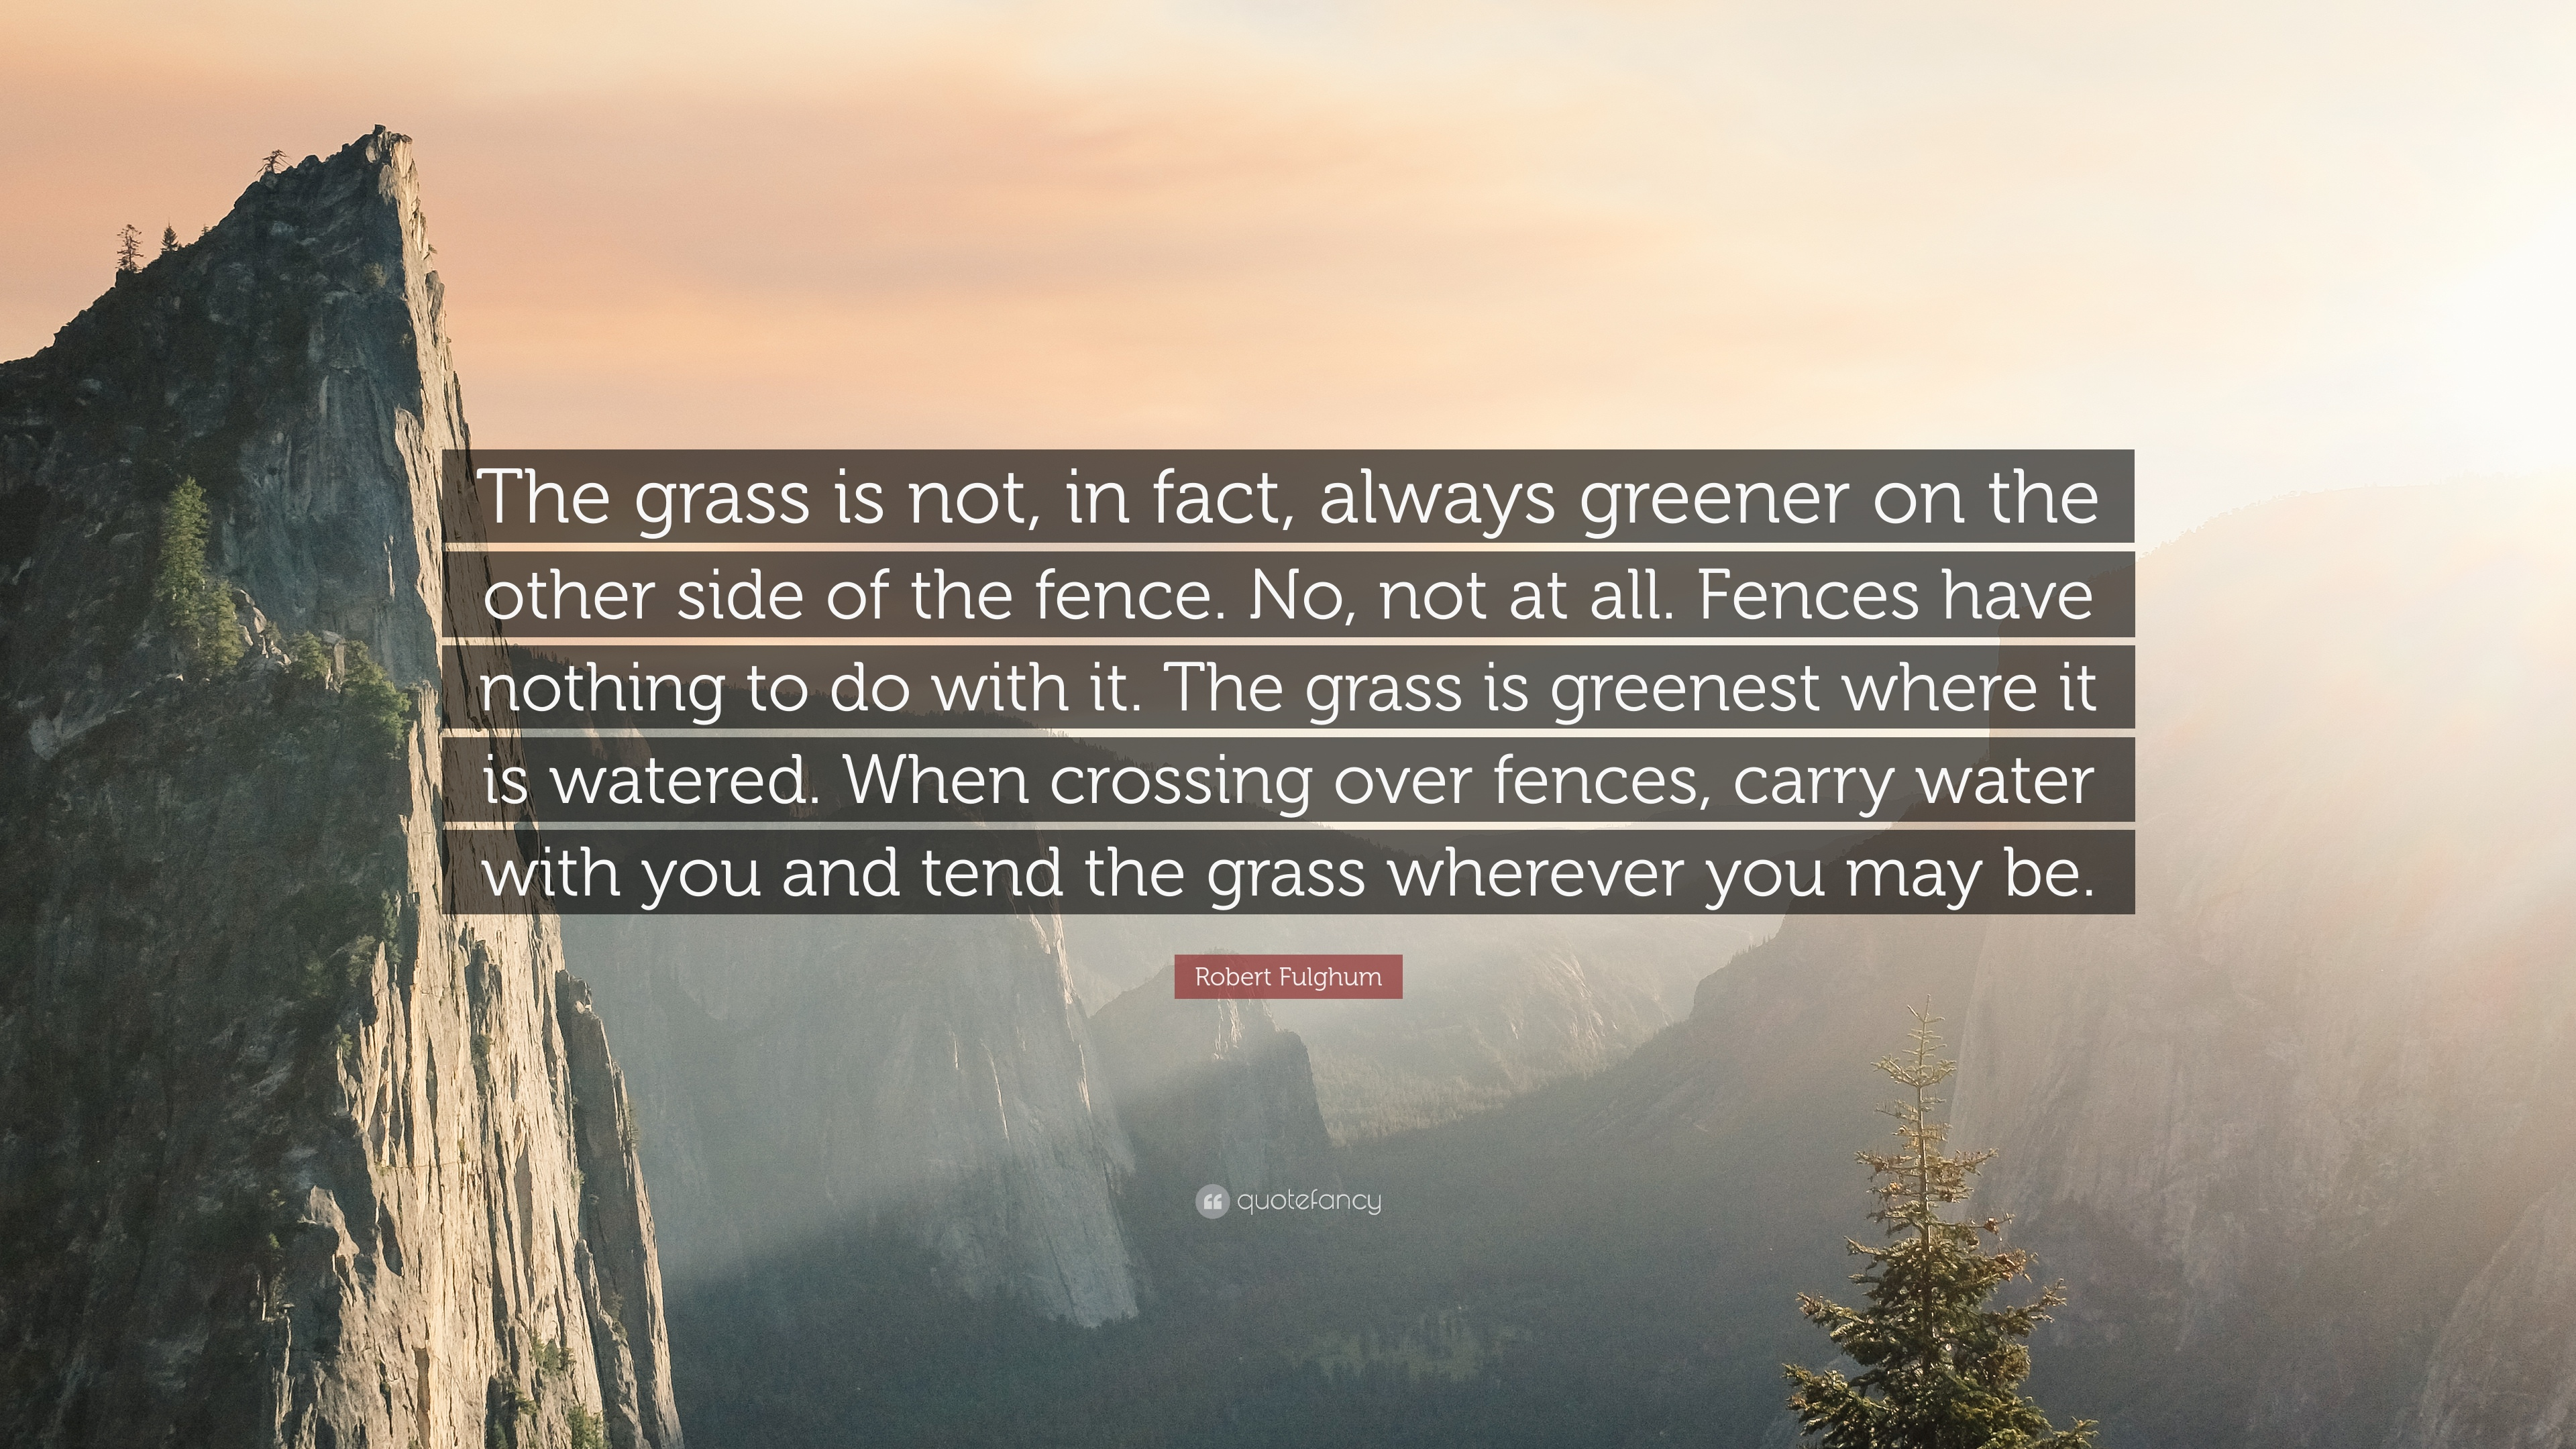 robert fulghum quote the grass is not in fact always greener